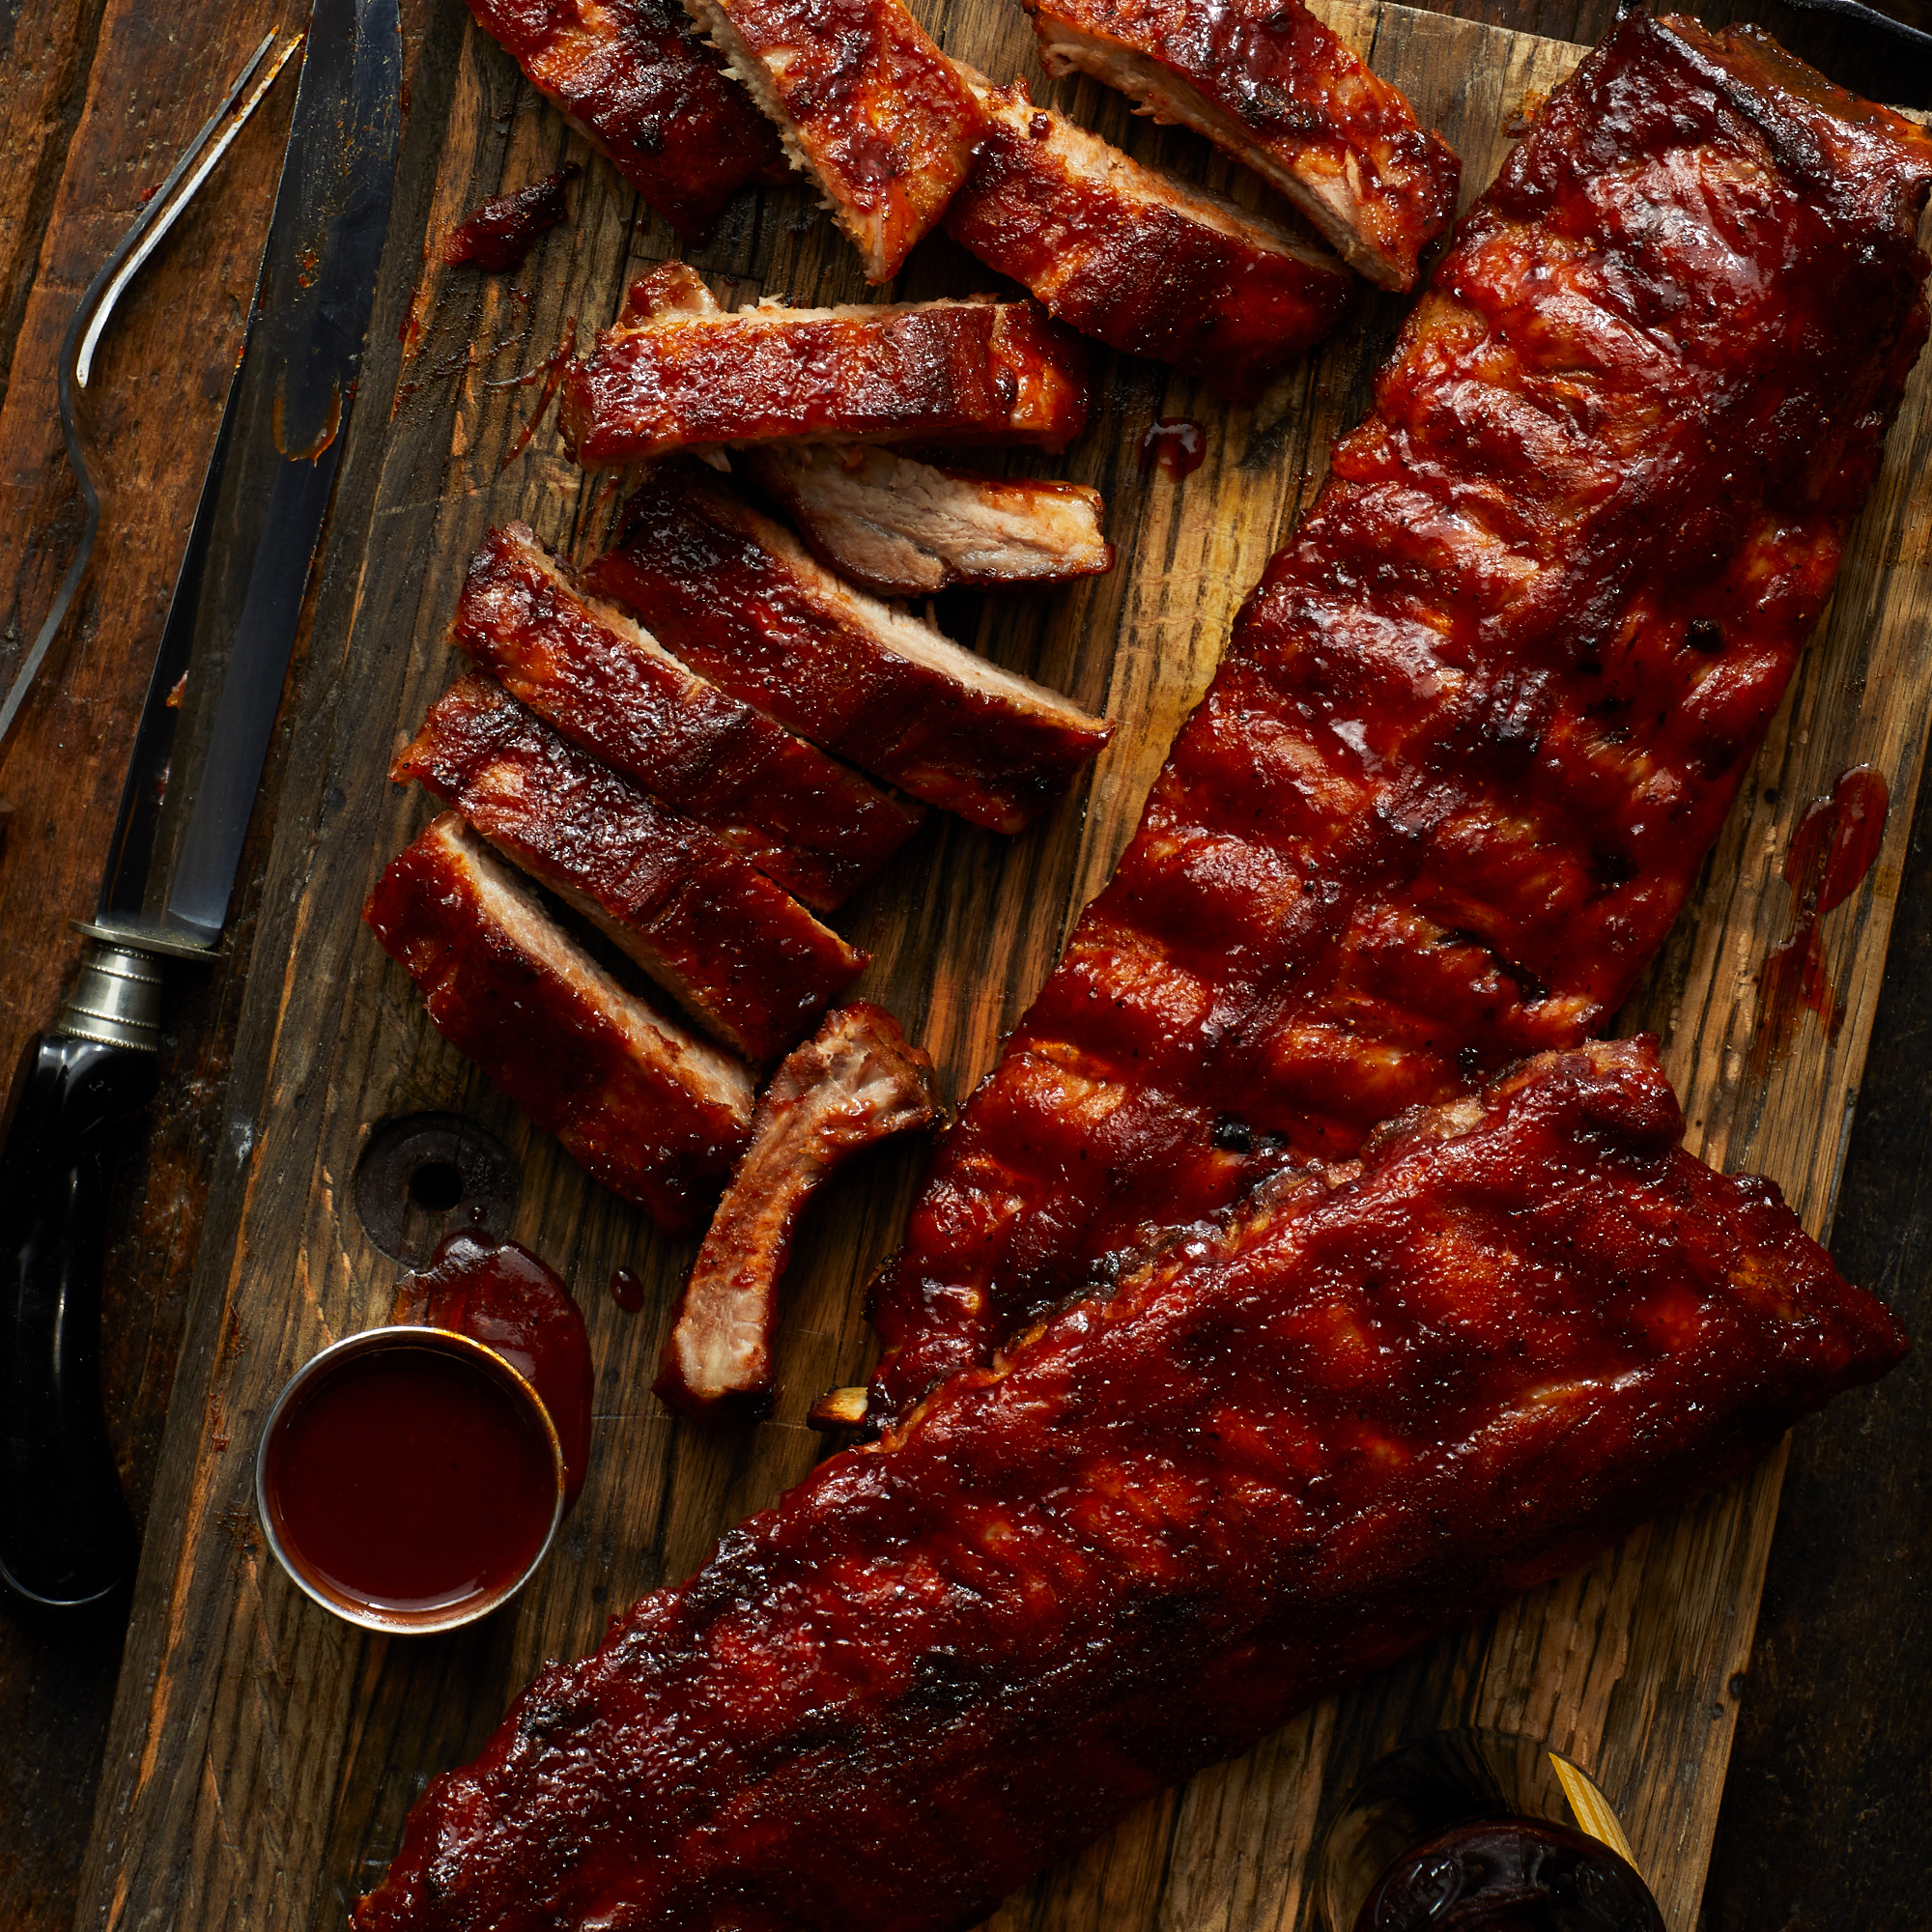 Meaty, tender, and delicious premium pork ribs.